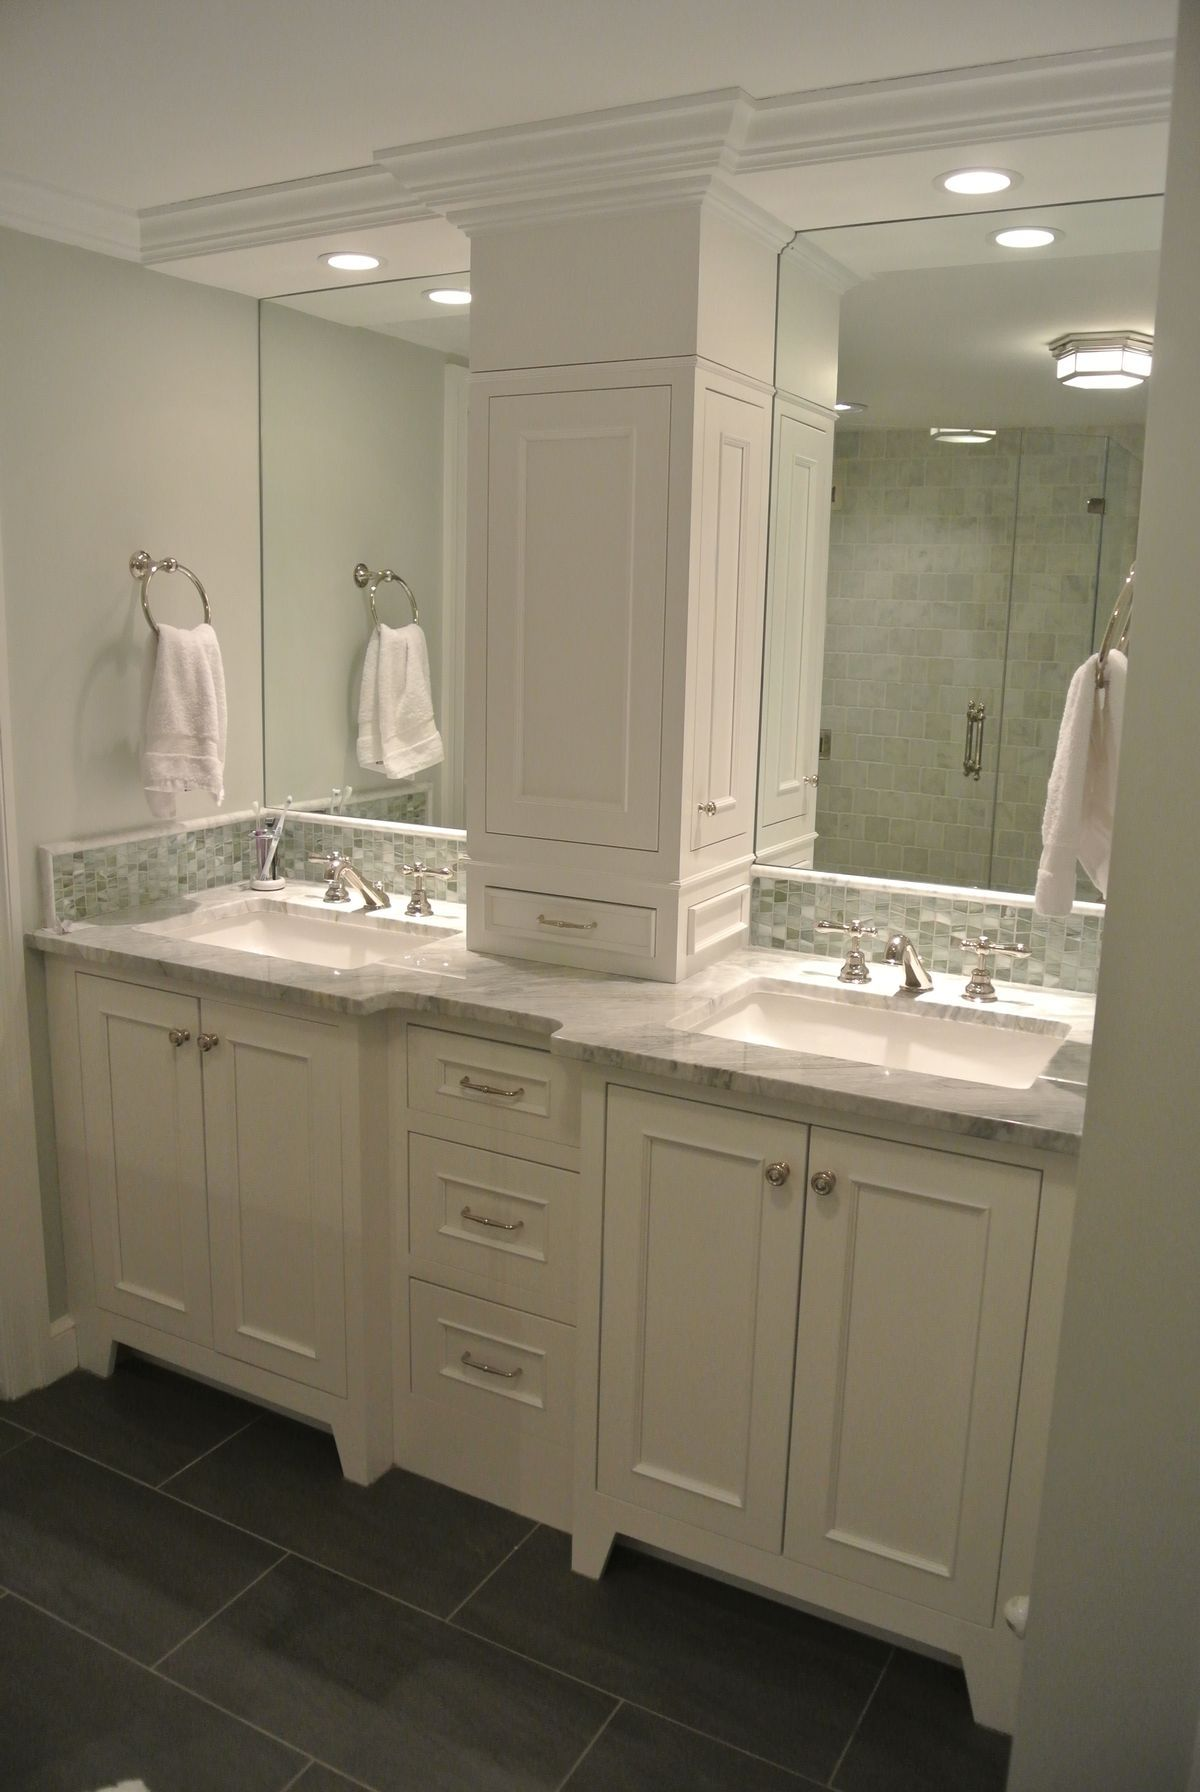 Ikea Bathroom Vanities A Linen Closet On The Countertop